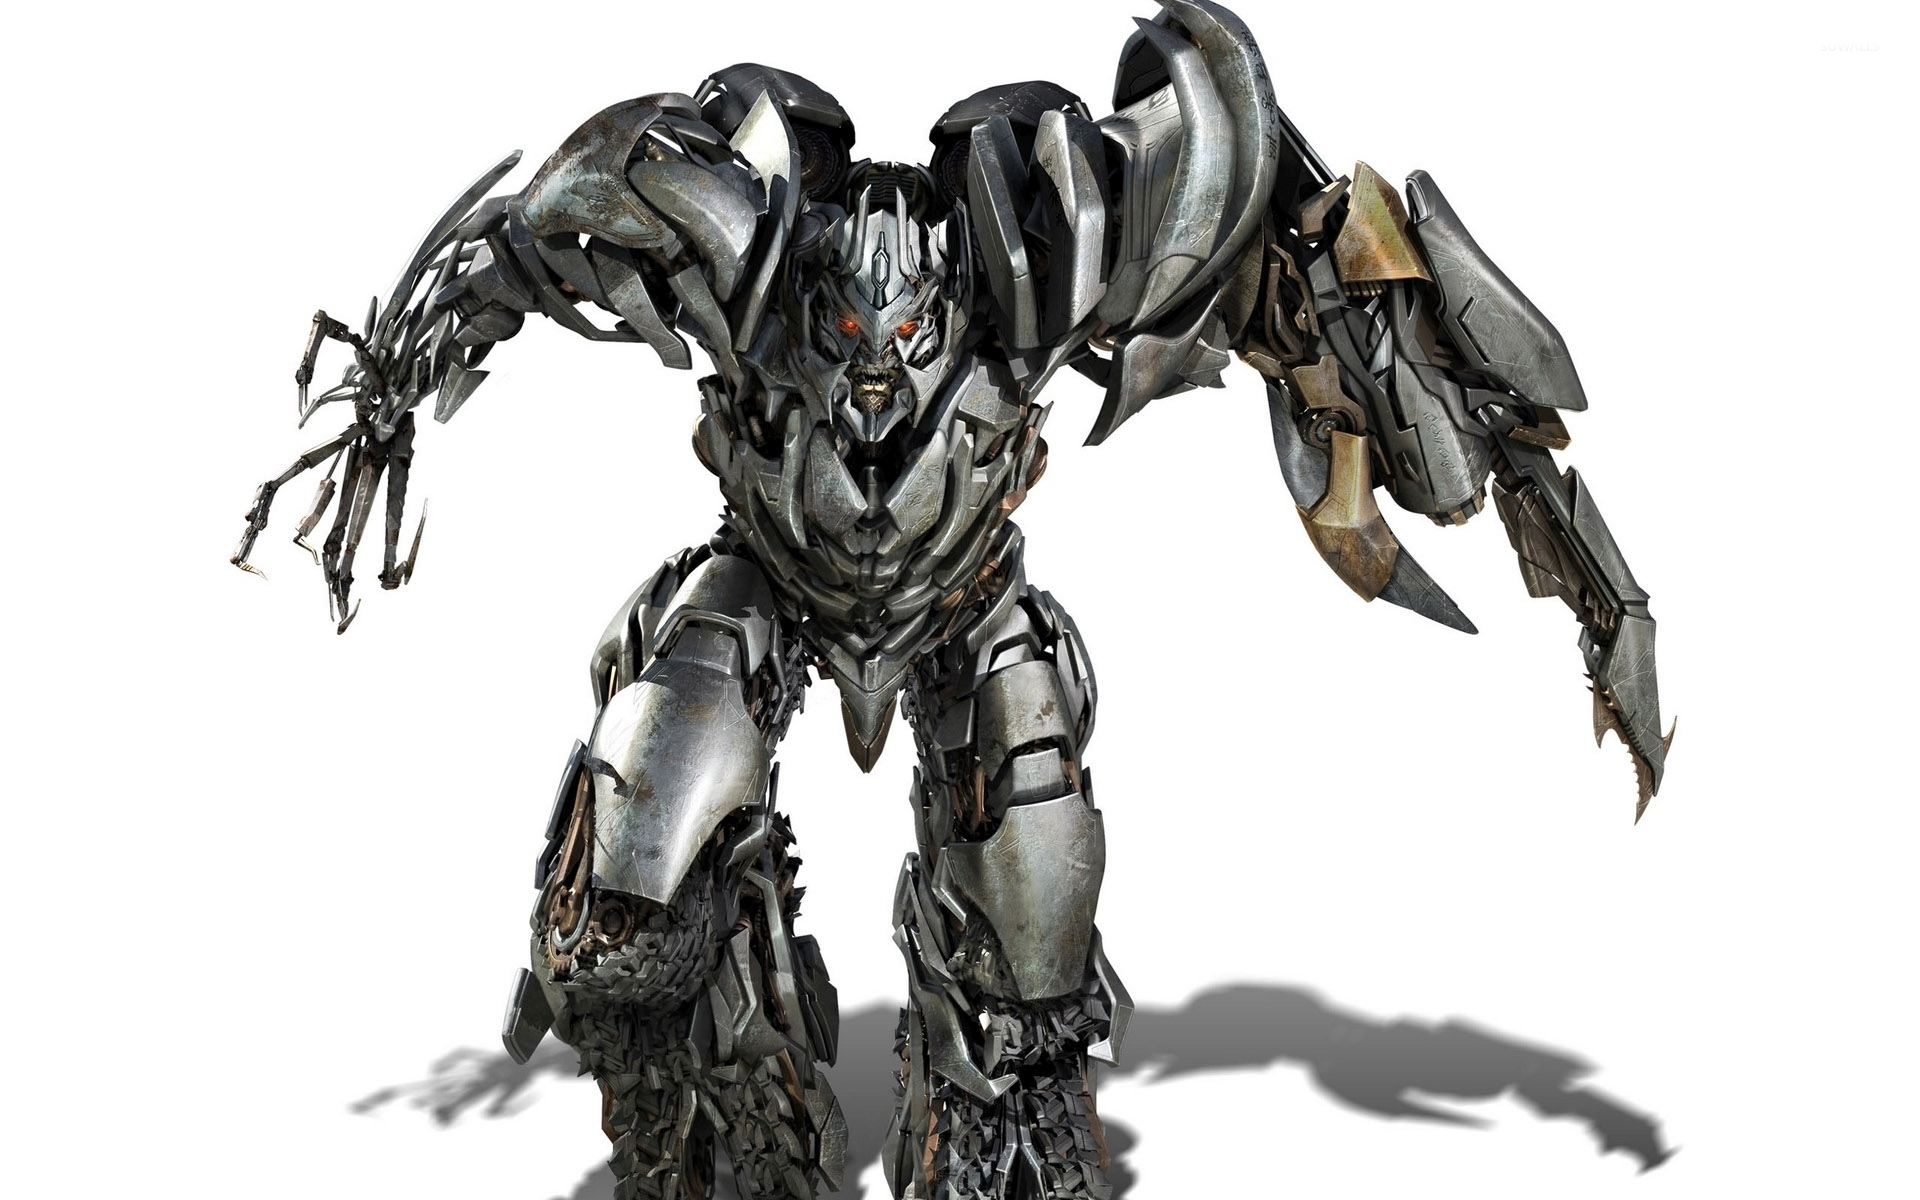 Megatron - Transformers [2] wallpaper - Movie wallpapers ...